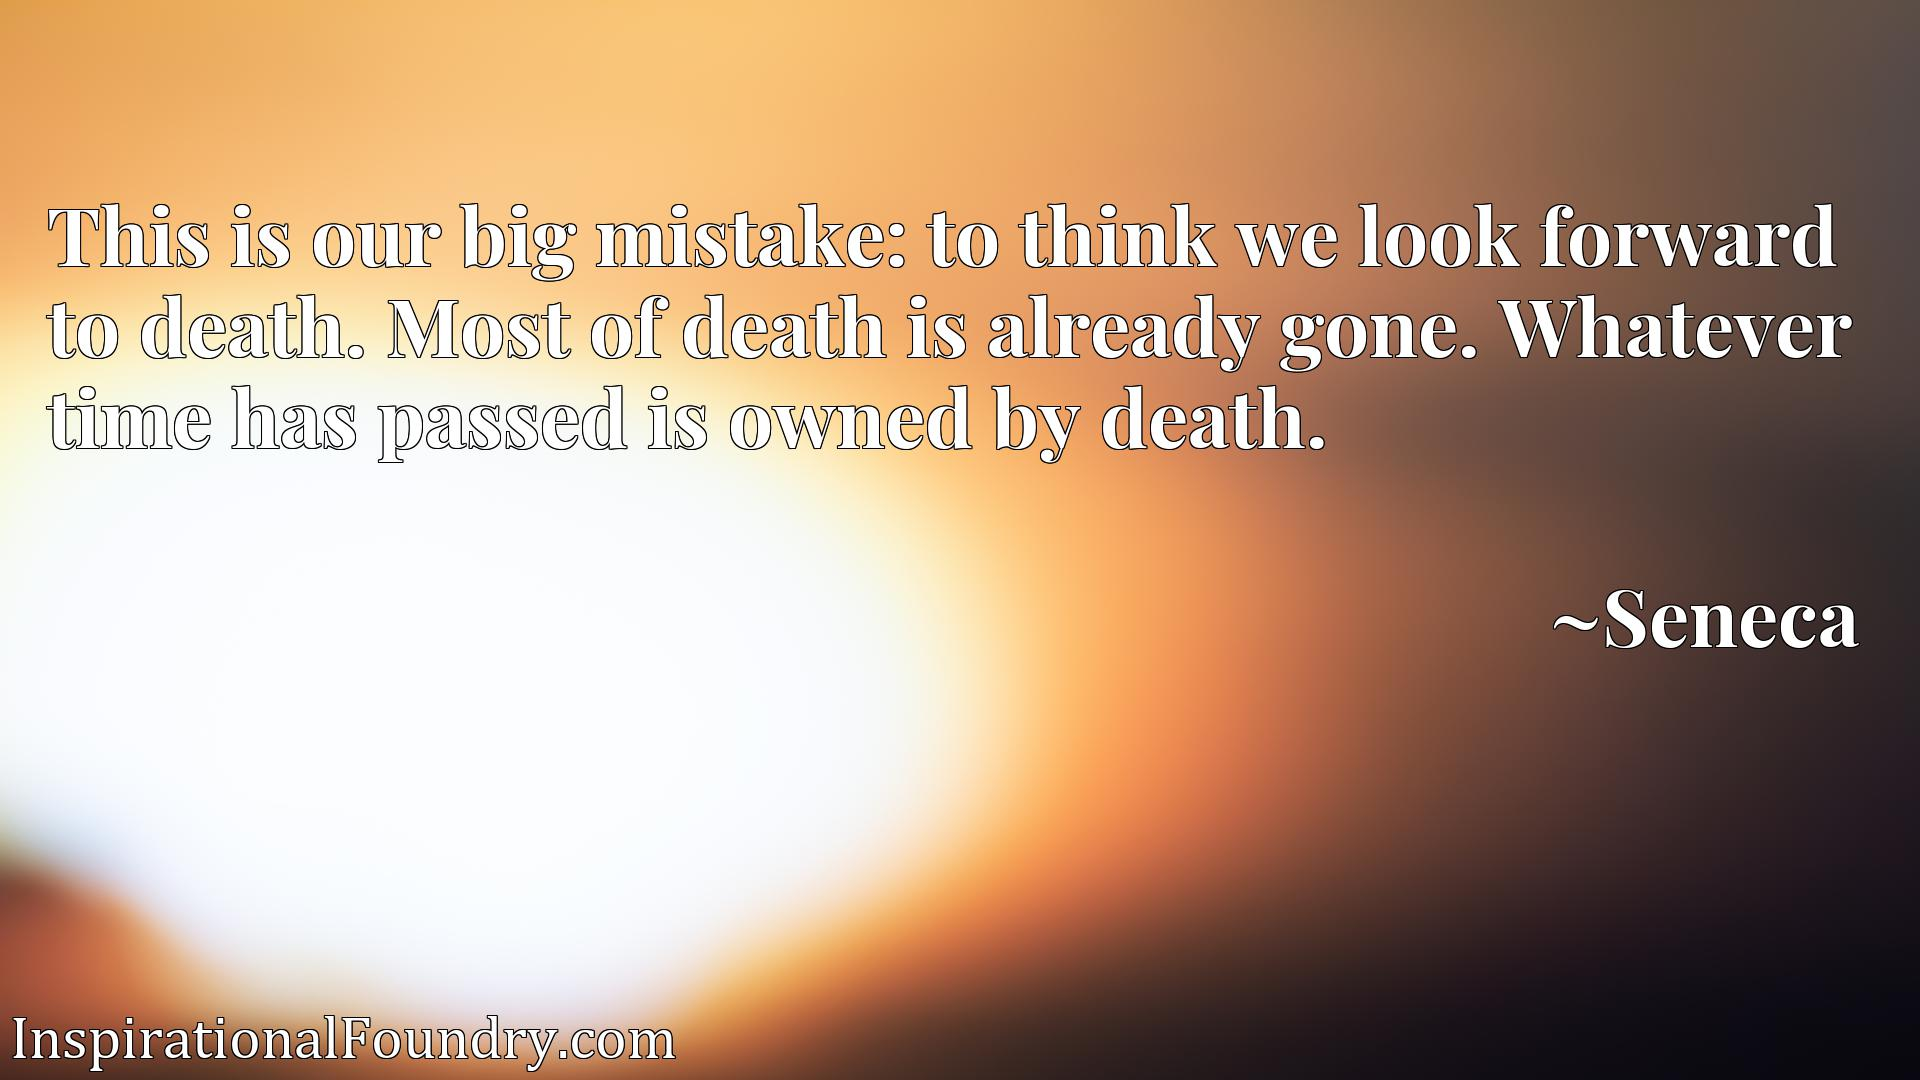 This is our big mistake: to think we look forward to death. Most of death is already gone. Whatever time has passed is owned by death.